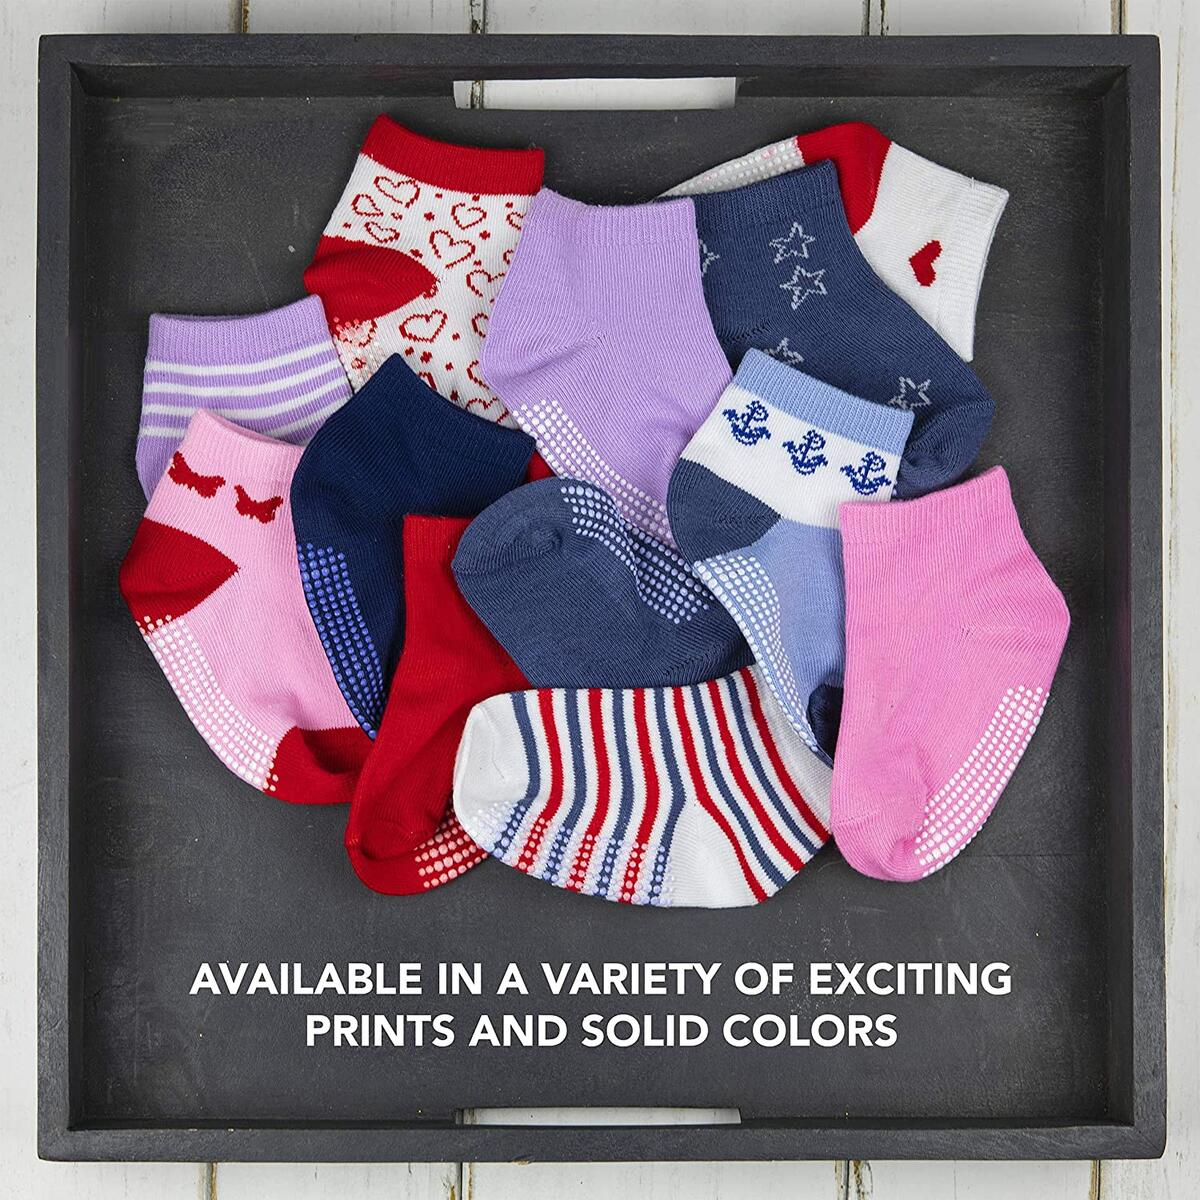 12 Pairs Non-Slip Toddler Socks With Grips for Baby Boys and Girls - Anti-Slip Crew Socks for Infant's and Kids